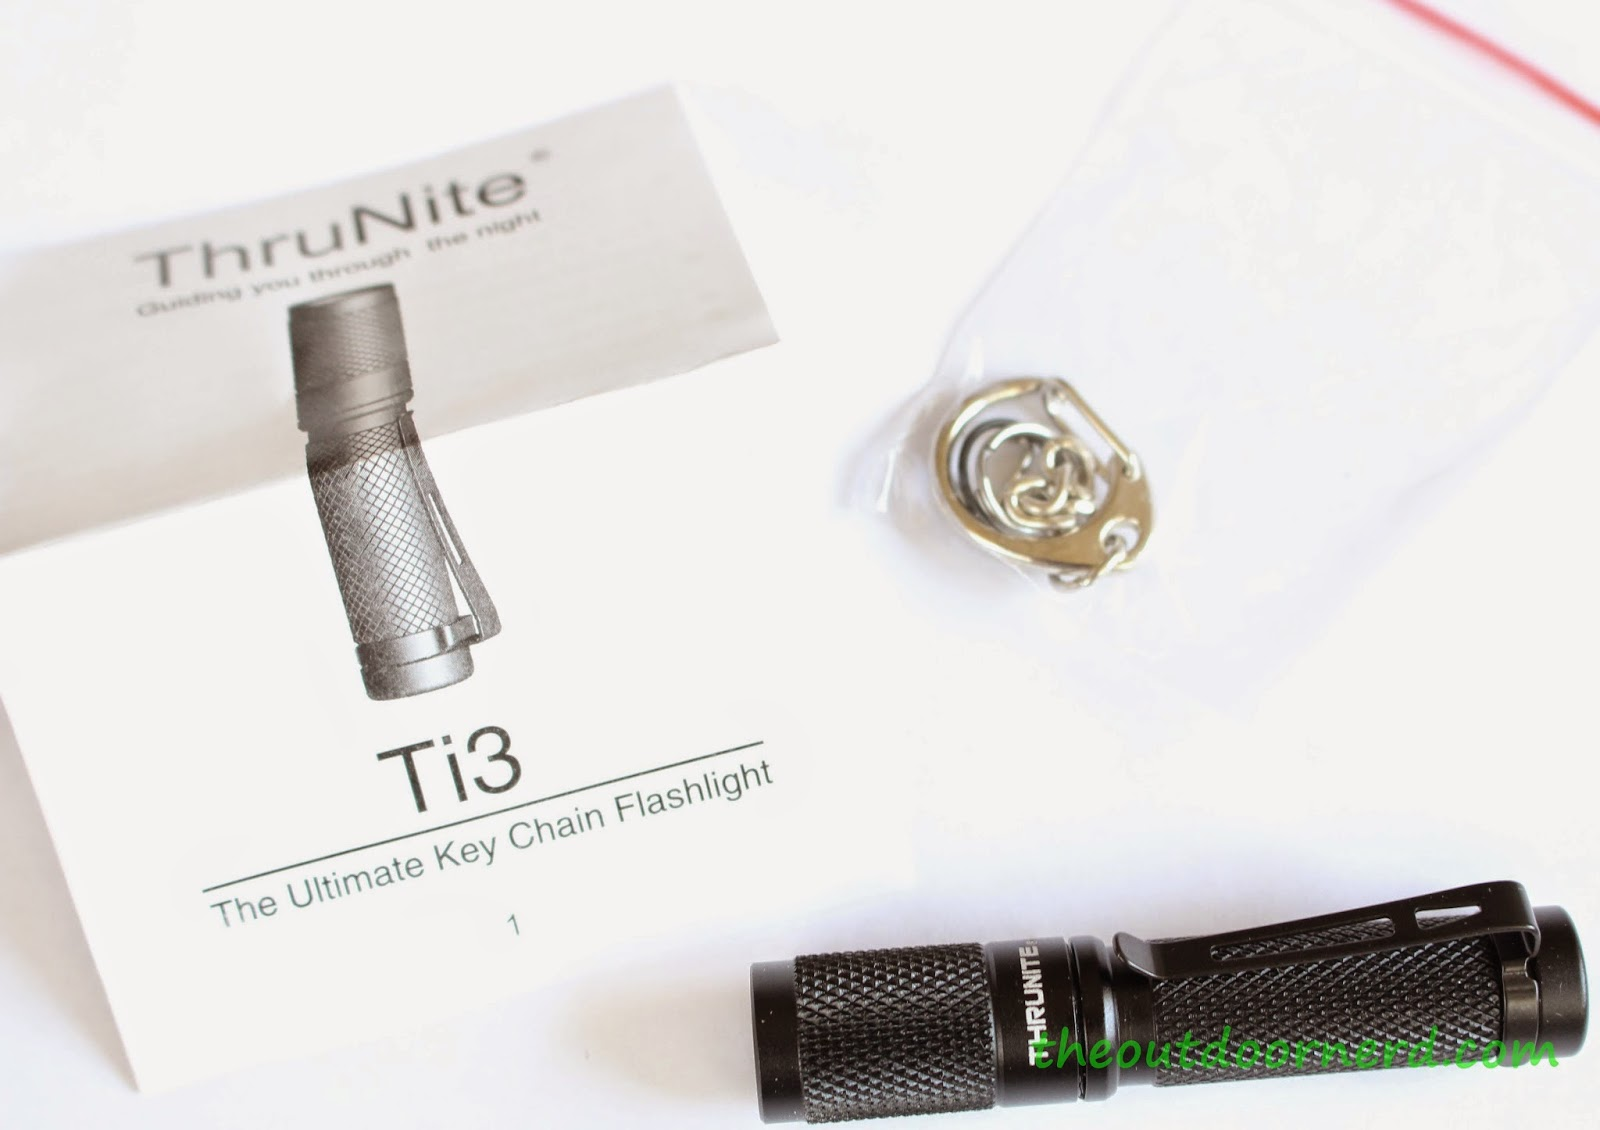 Thrunite Ti3 1xAAA EDC Flashlight: Packaging 5